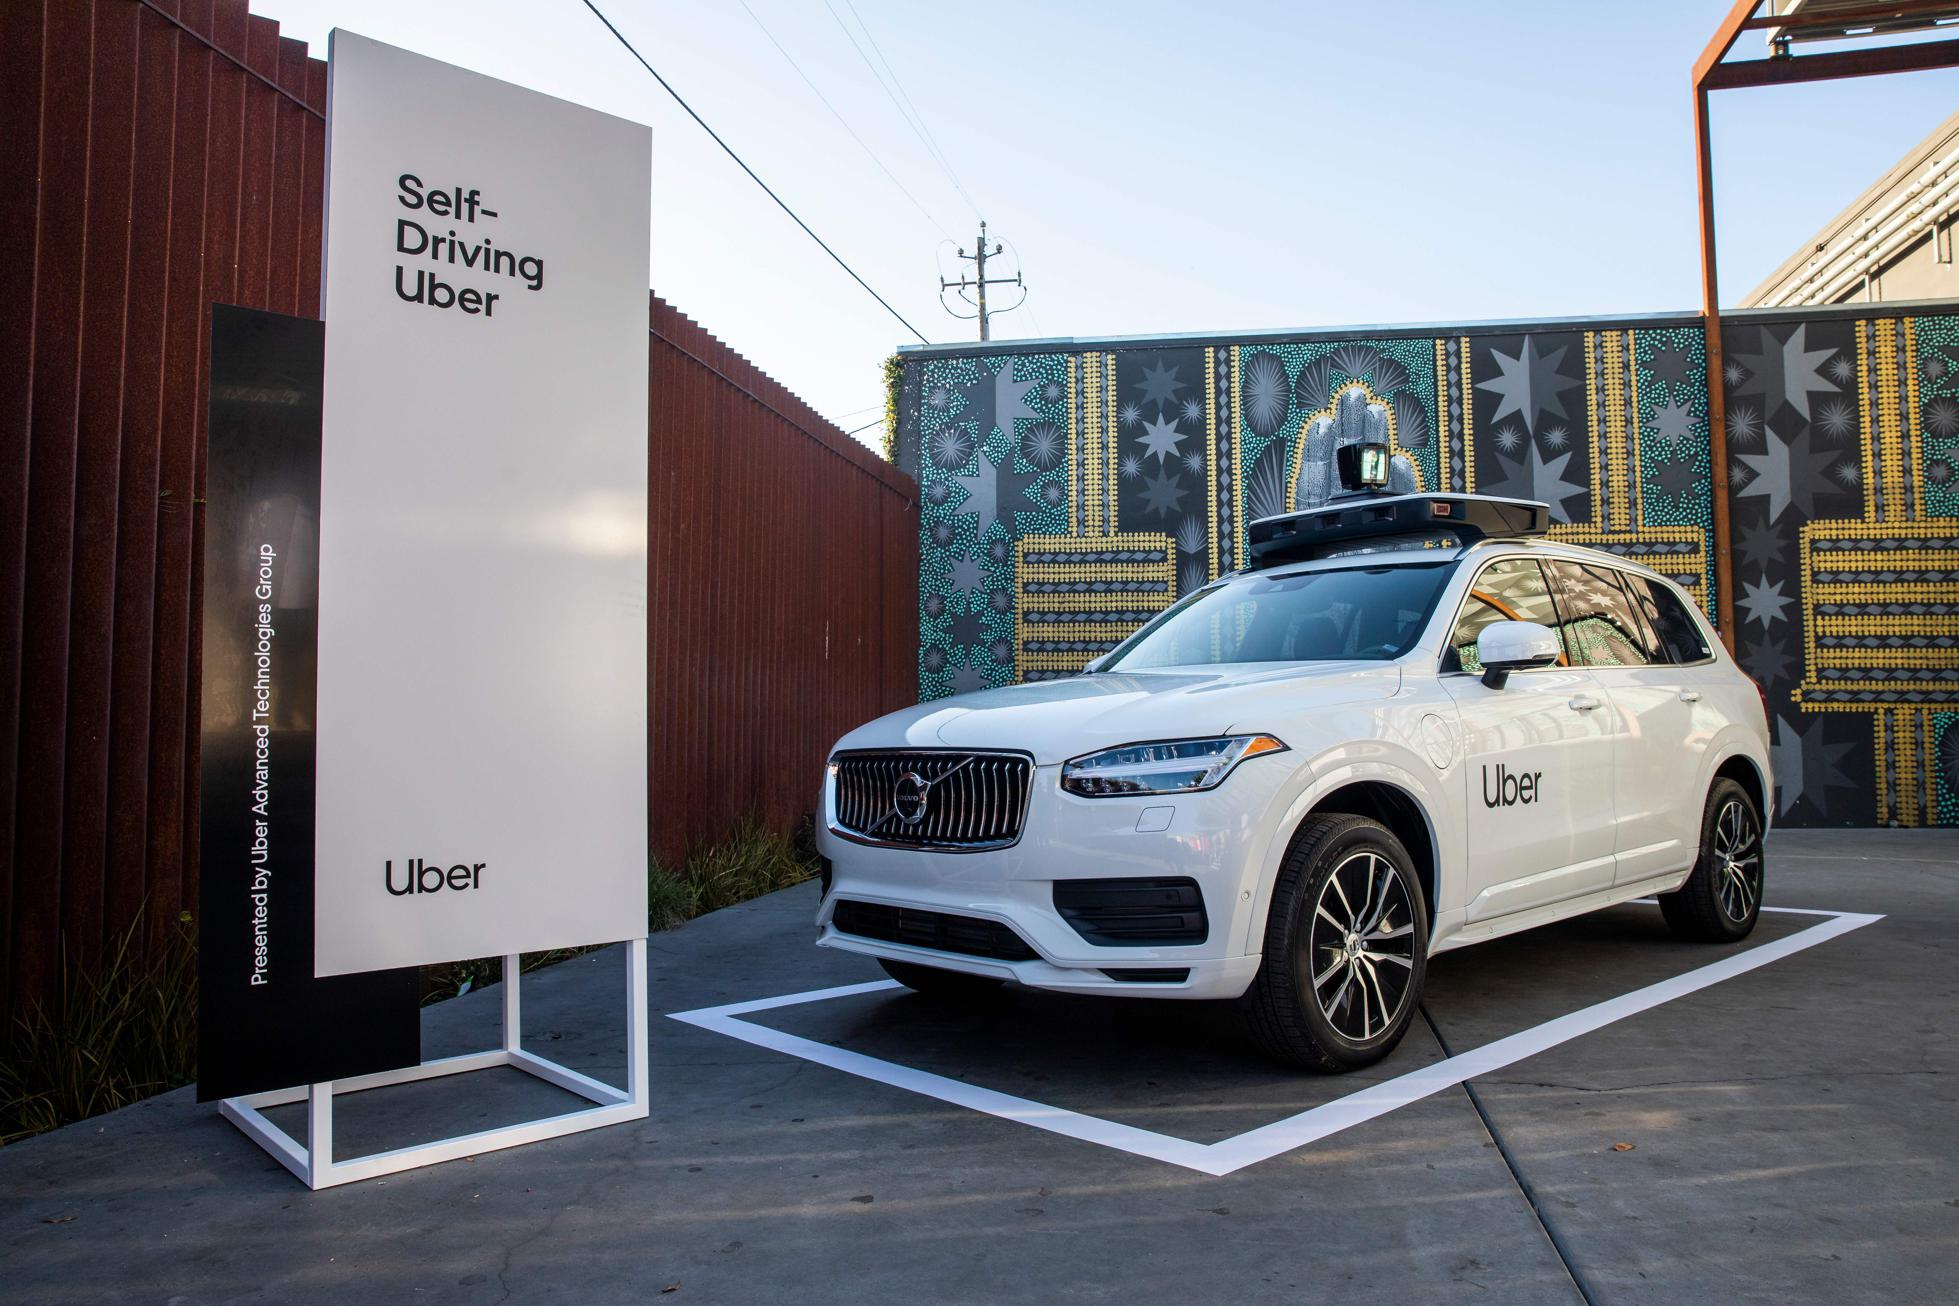 Uber has been working on self-driving technology for 5 years, without results.